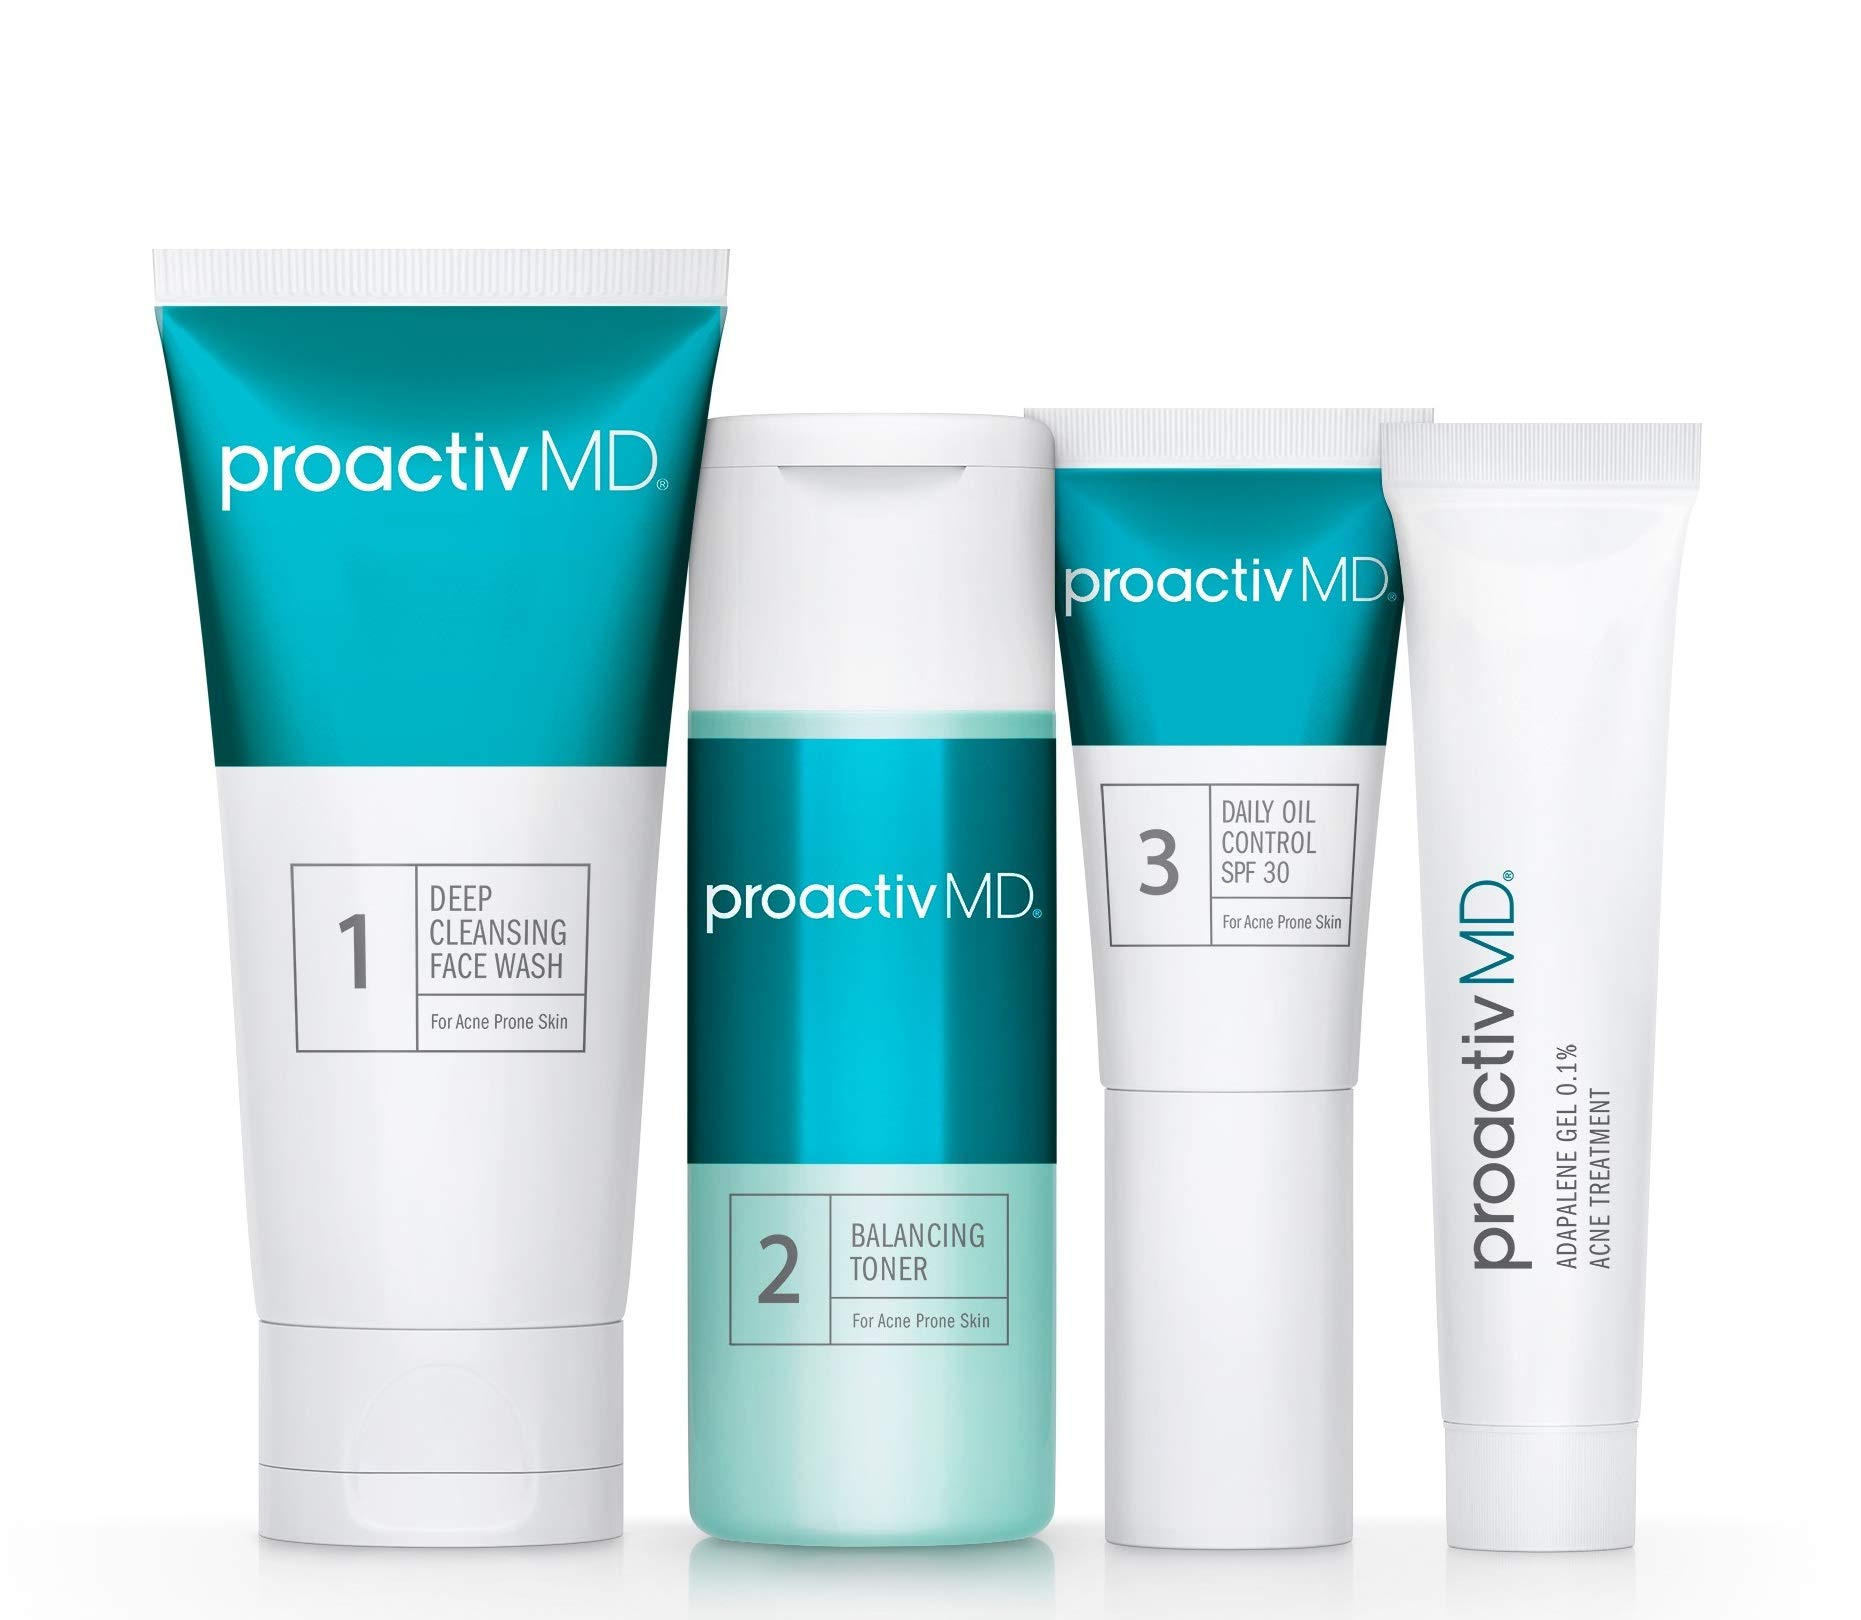 ProactivMD Essentials System, Introductory Size by Proactiv